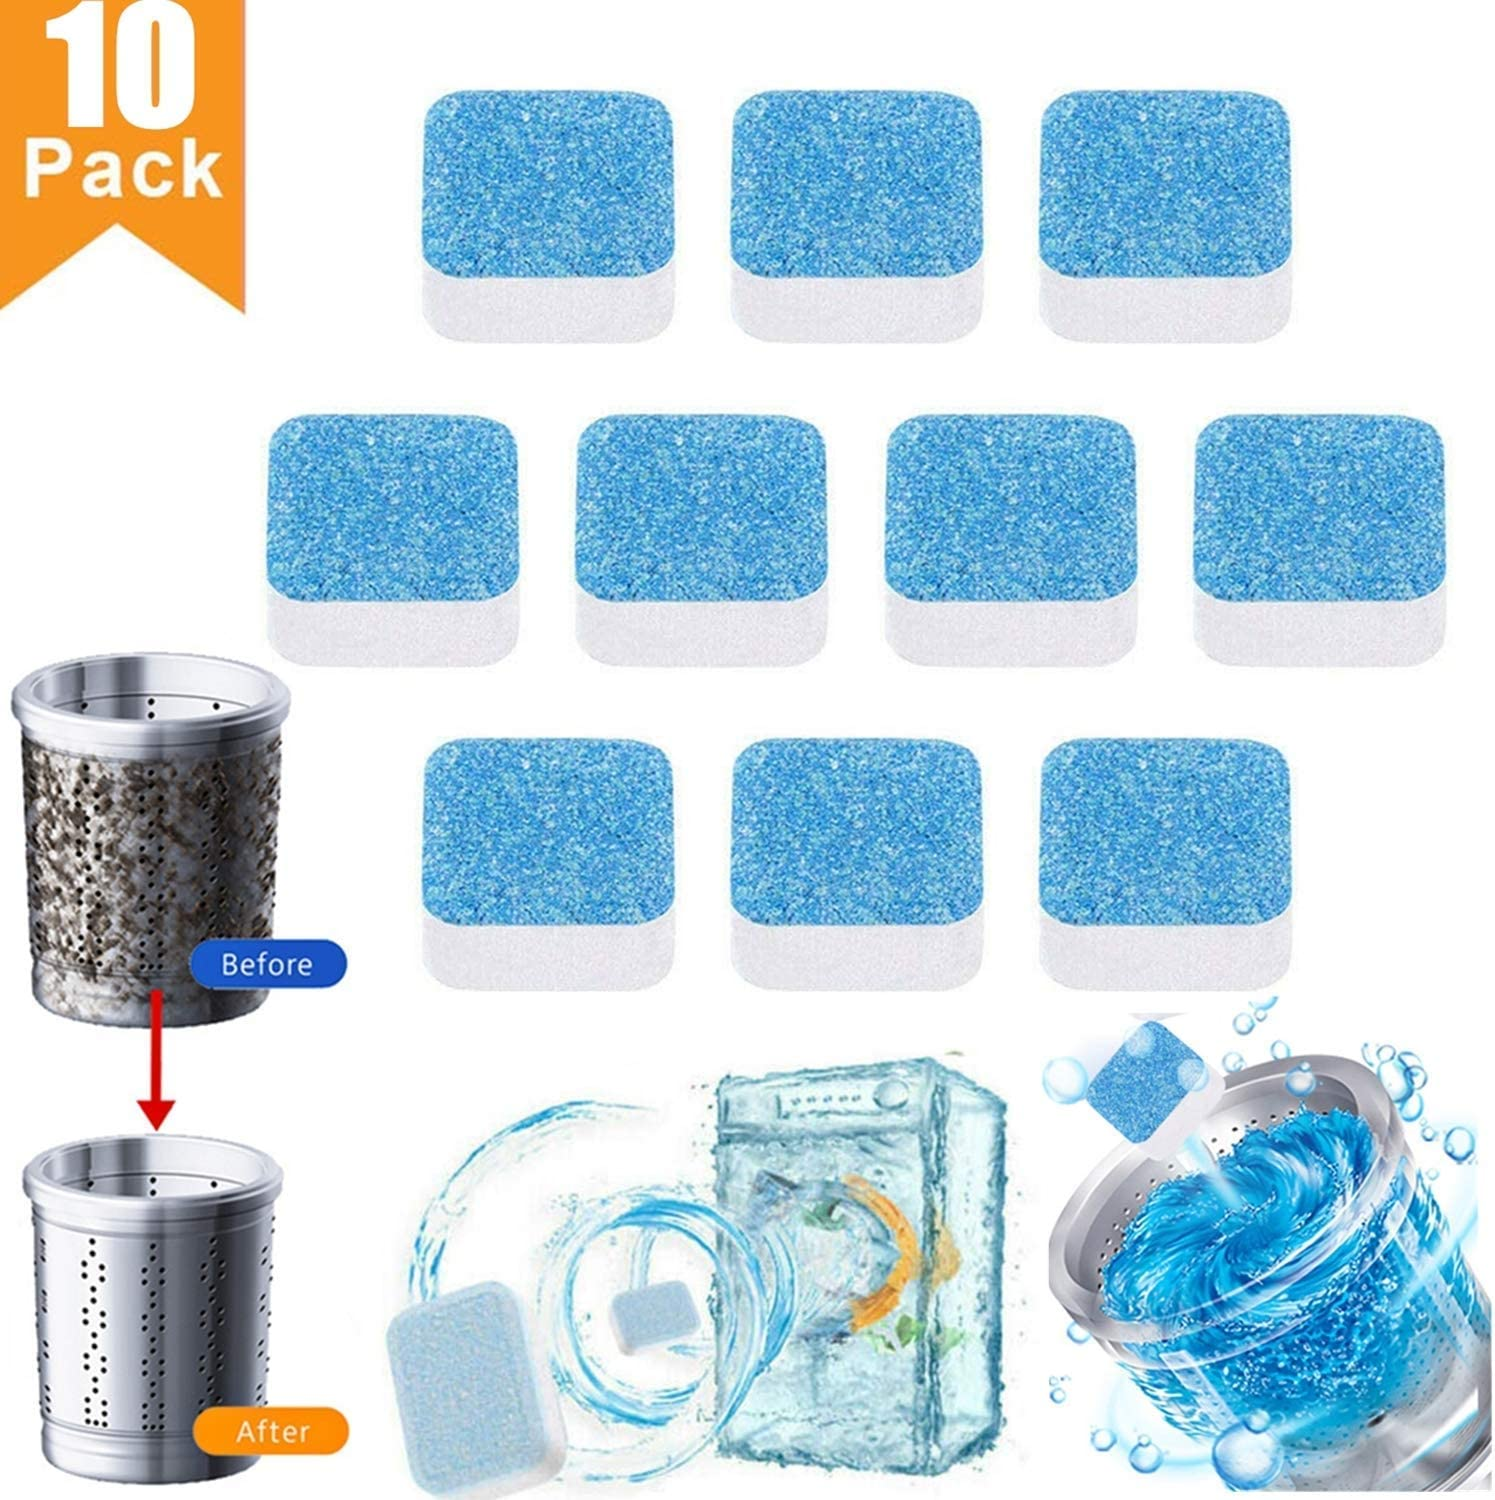 uhmhome Washing Machine Cleaner Tablet - Washer Machine Cleaner for Front & Top Loader Tablet Tub Bomb Deep Cleaning for Home & Kitchen(10 Pack)